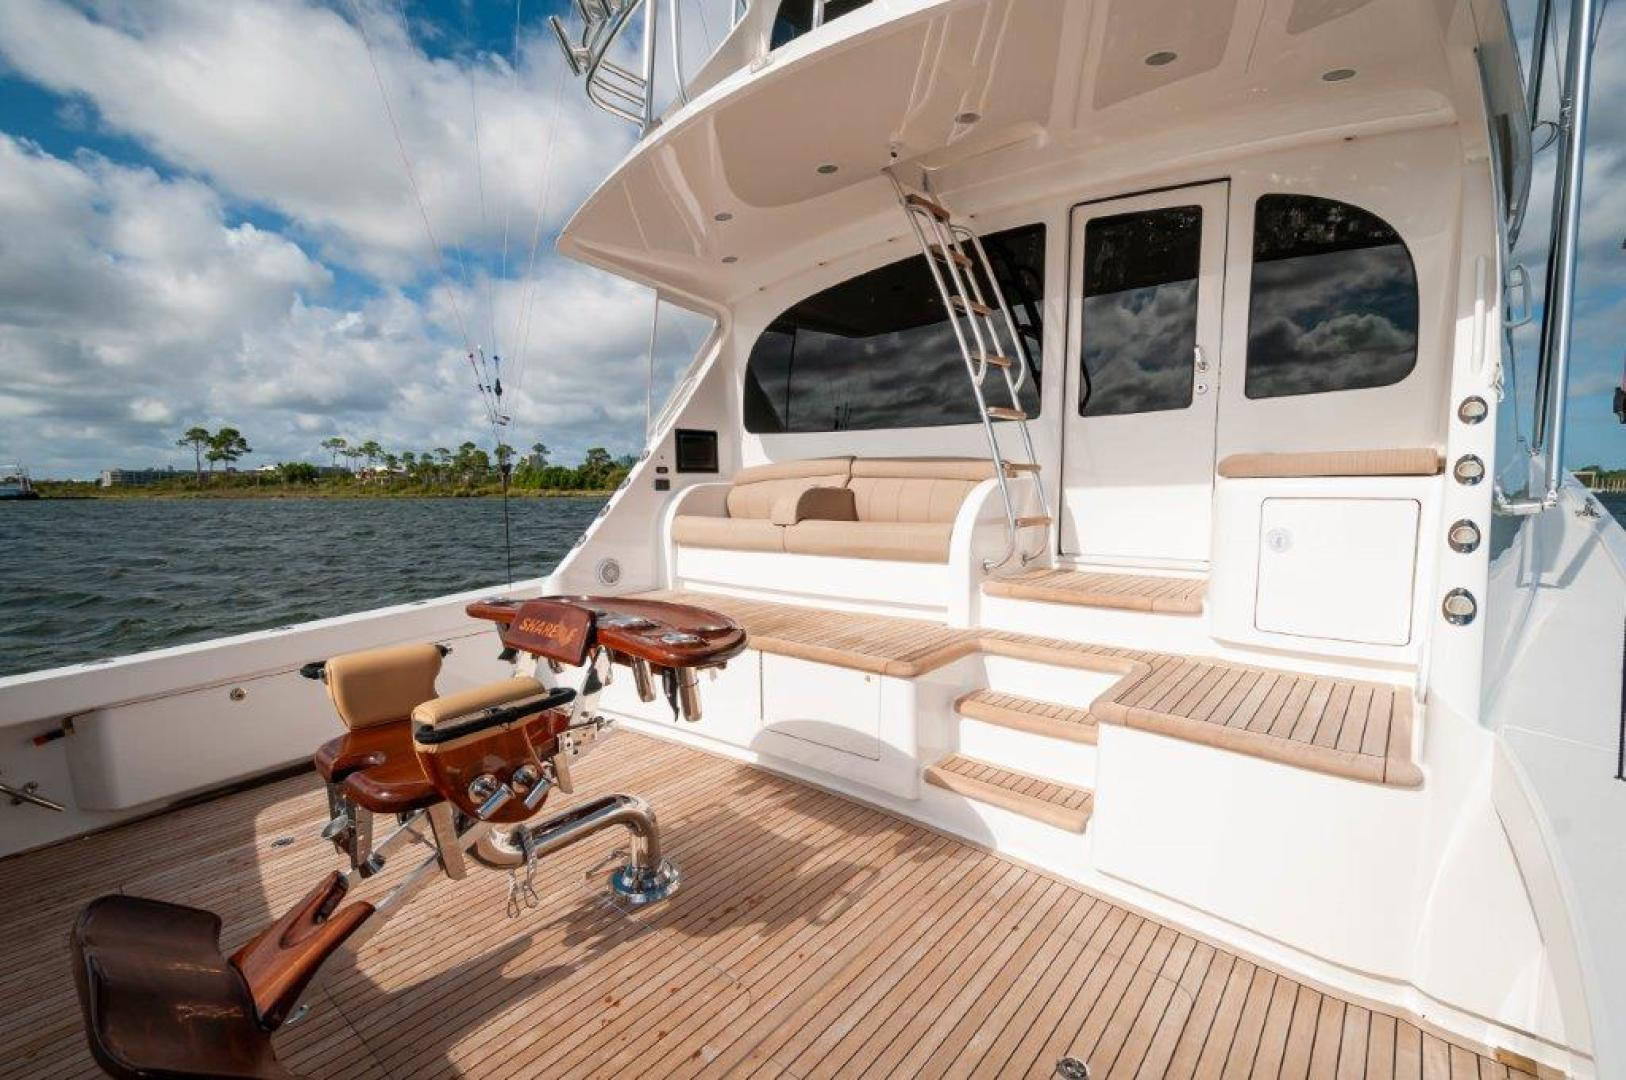 Viking-72 Enclosed Bridge 2017-SHARE E Orange Beach-Alabama-United States-2017 72 EB Viking SHARE-E Cockpit-1233221 | Thumbnail